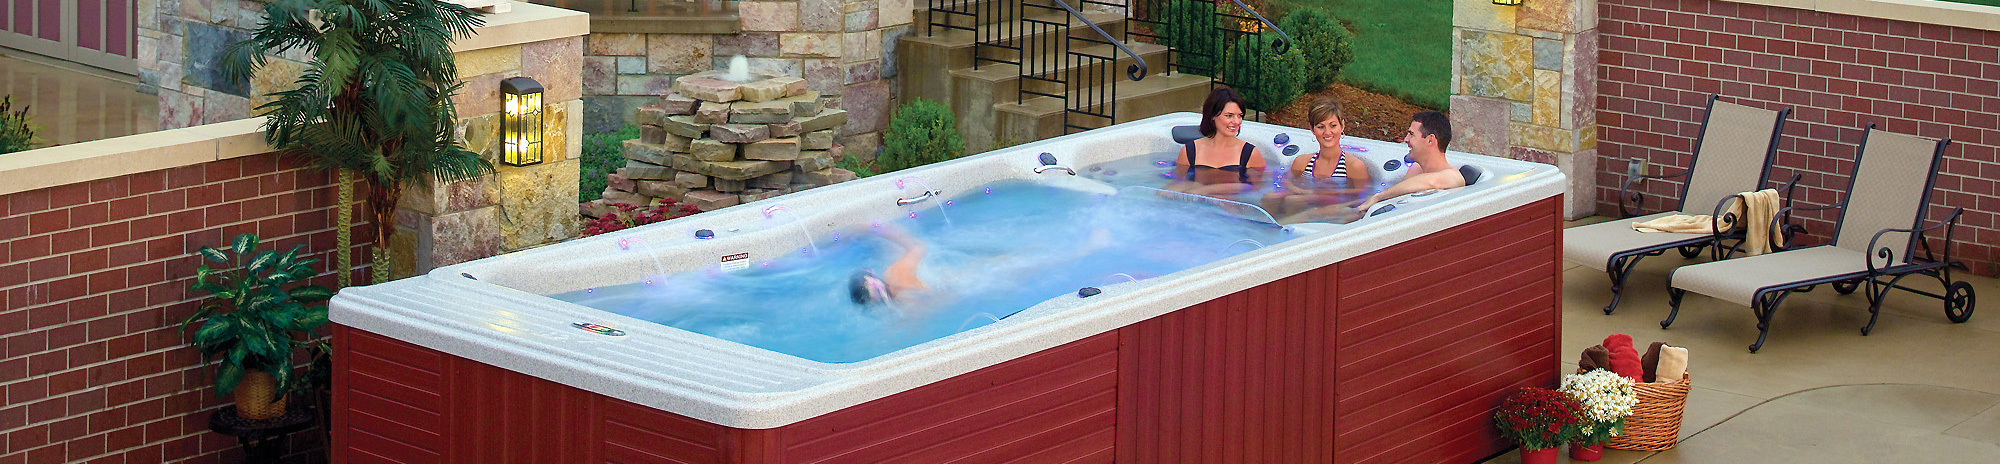 Woburn Hot Tubs, Swim Spas, Pools, Sunrooms, Merrimack Hot Tubs NH ...